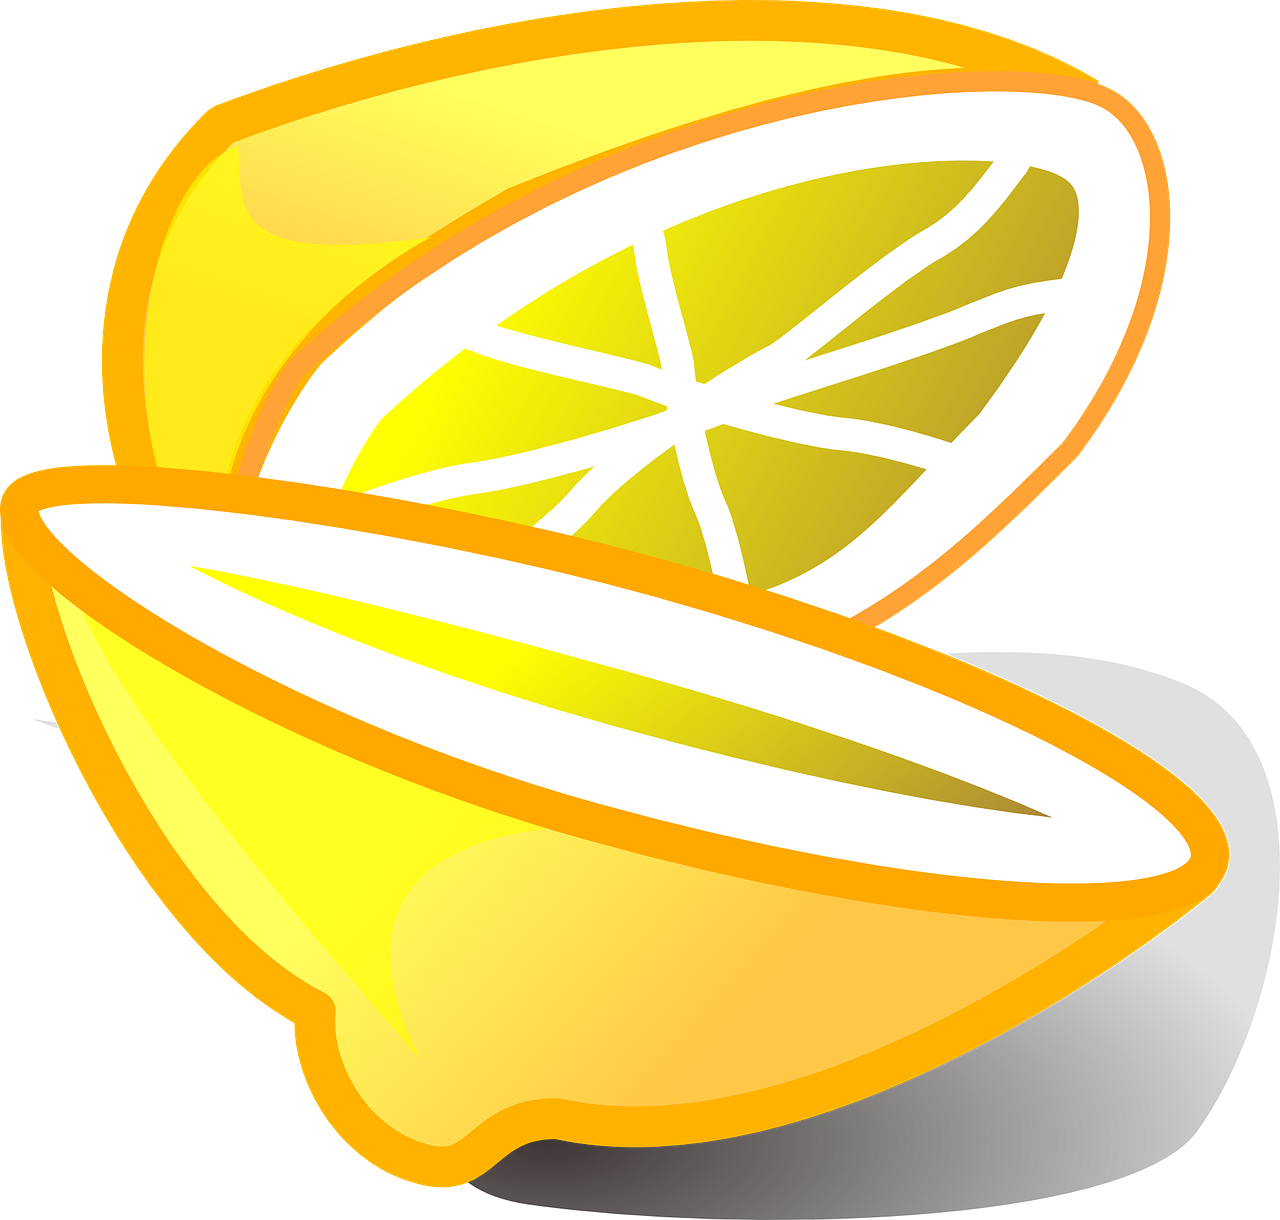 lemon citrus fruit free photo